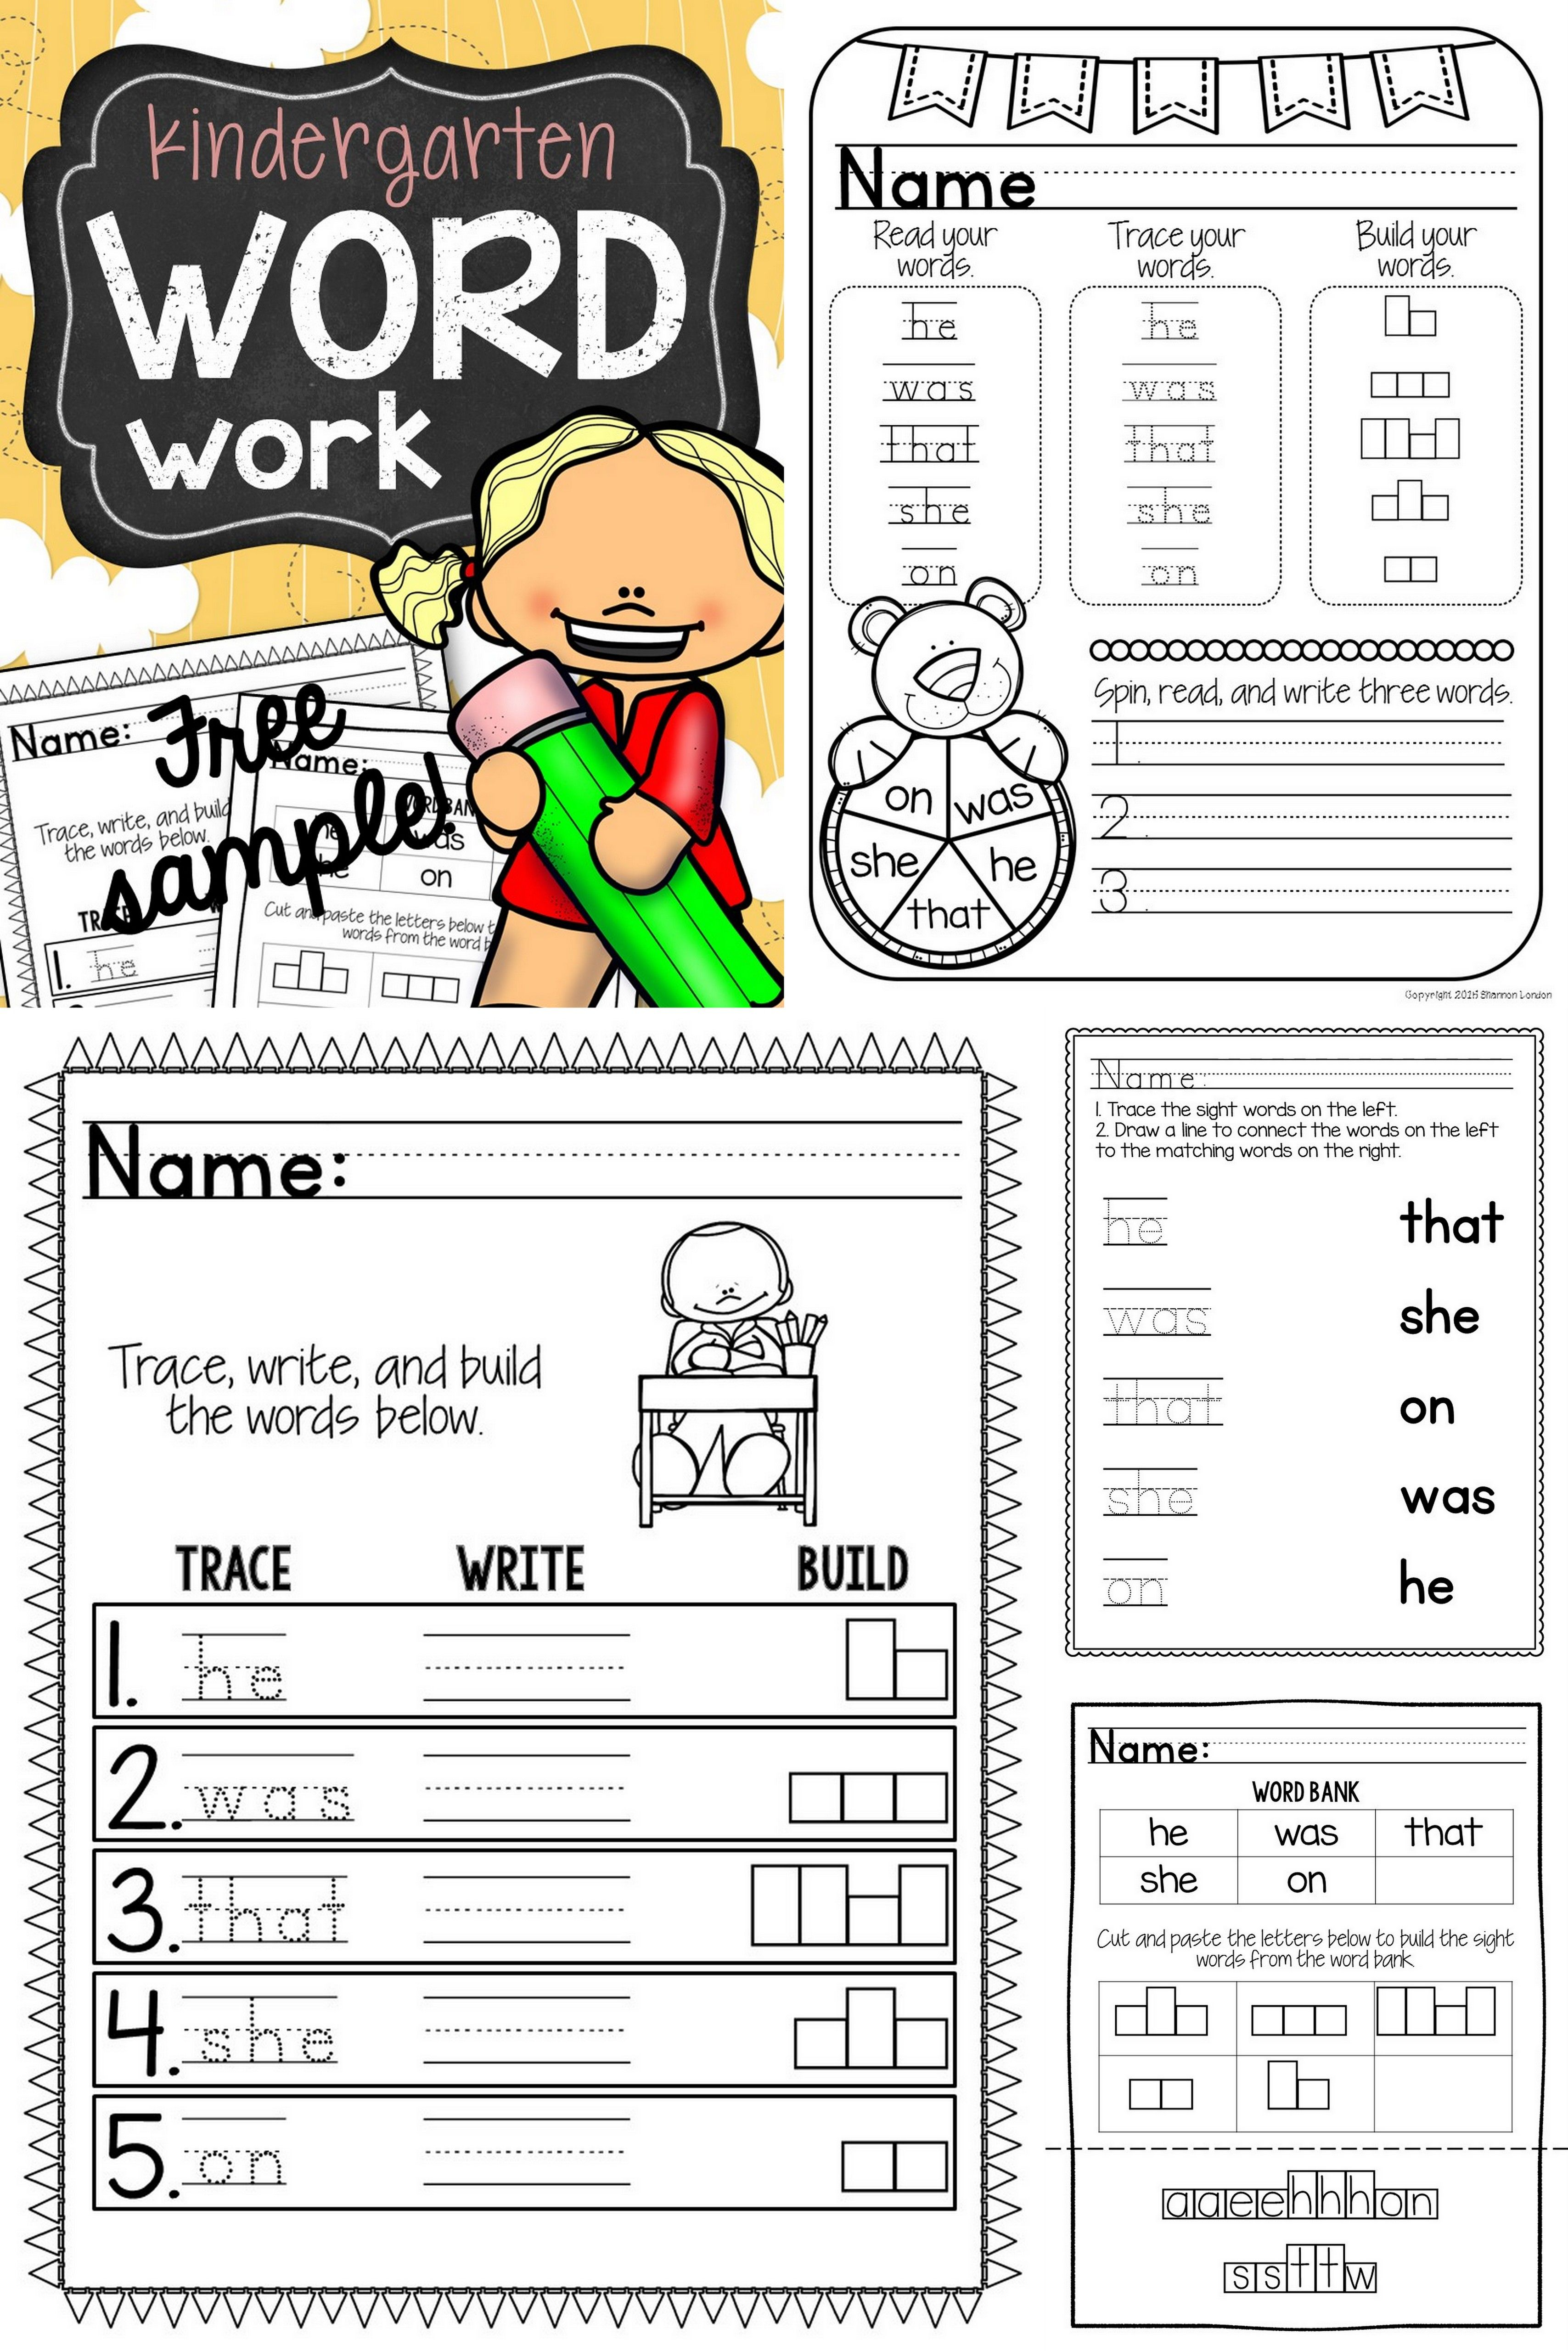 Free Kindergarten Word Work